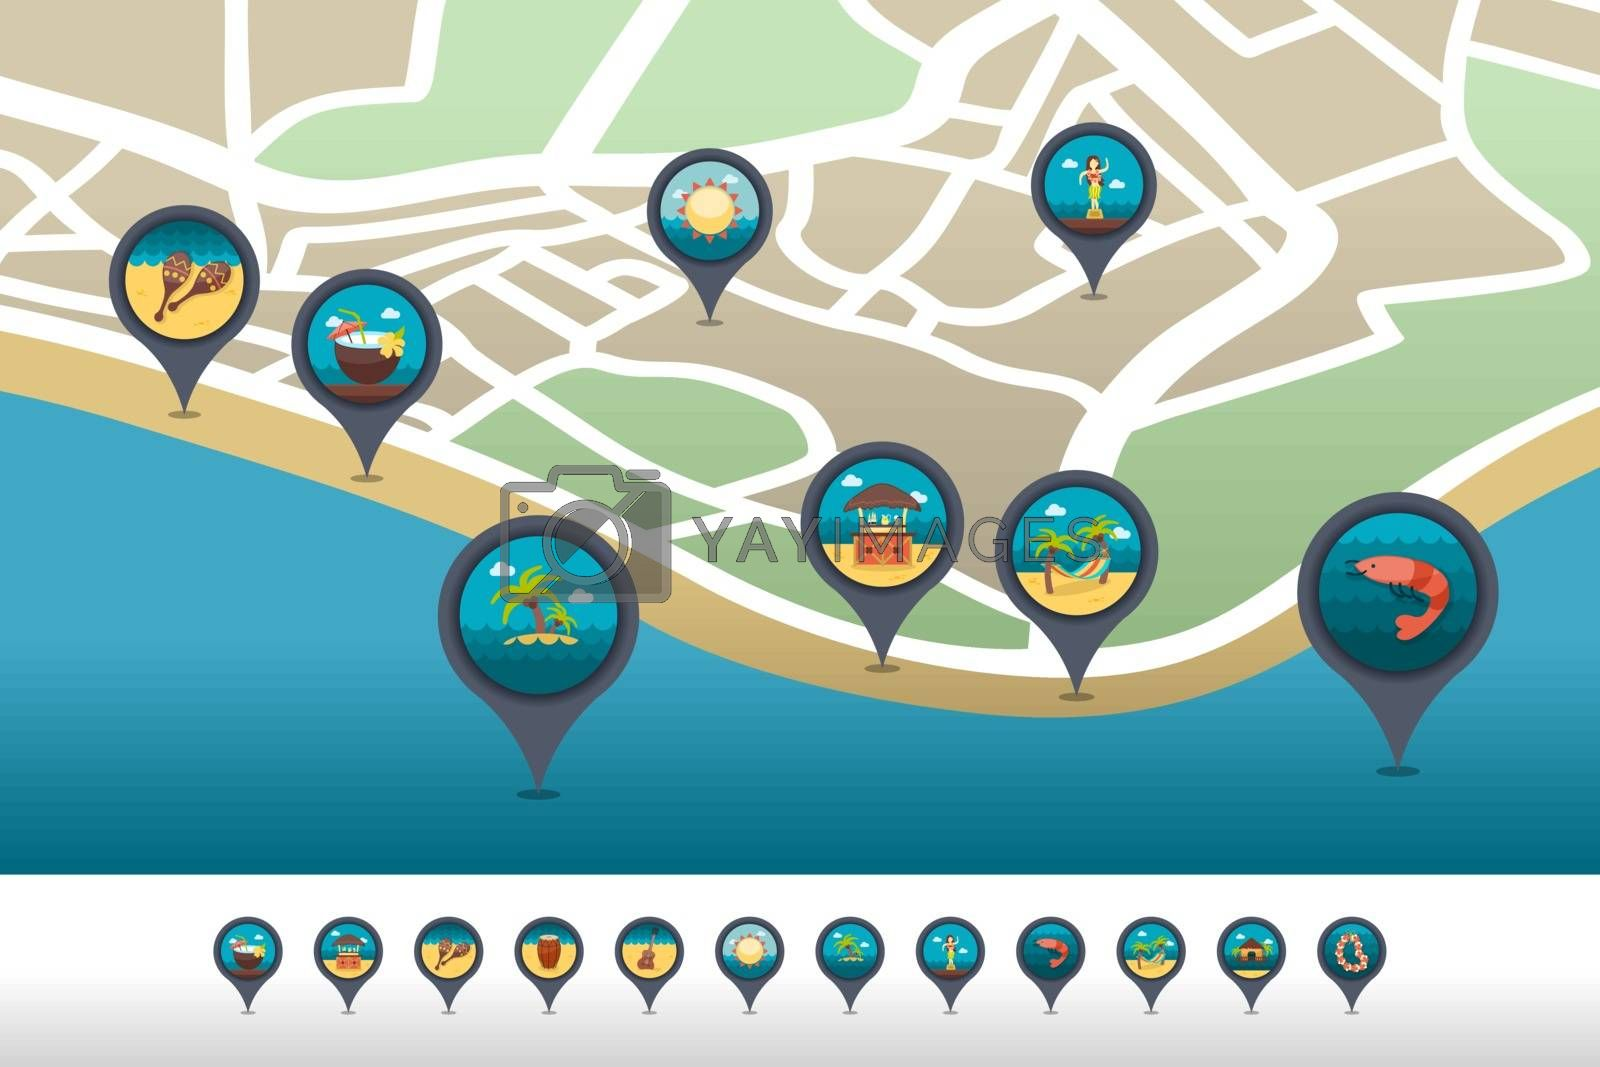 Island beach pin map icon located on the map by nosik